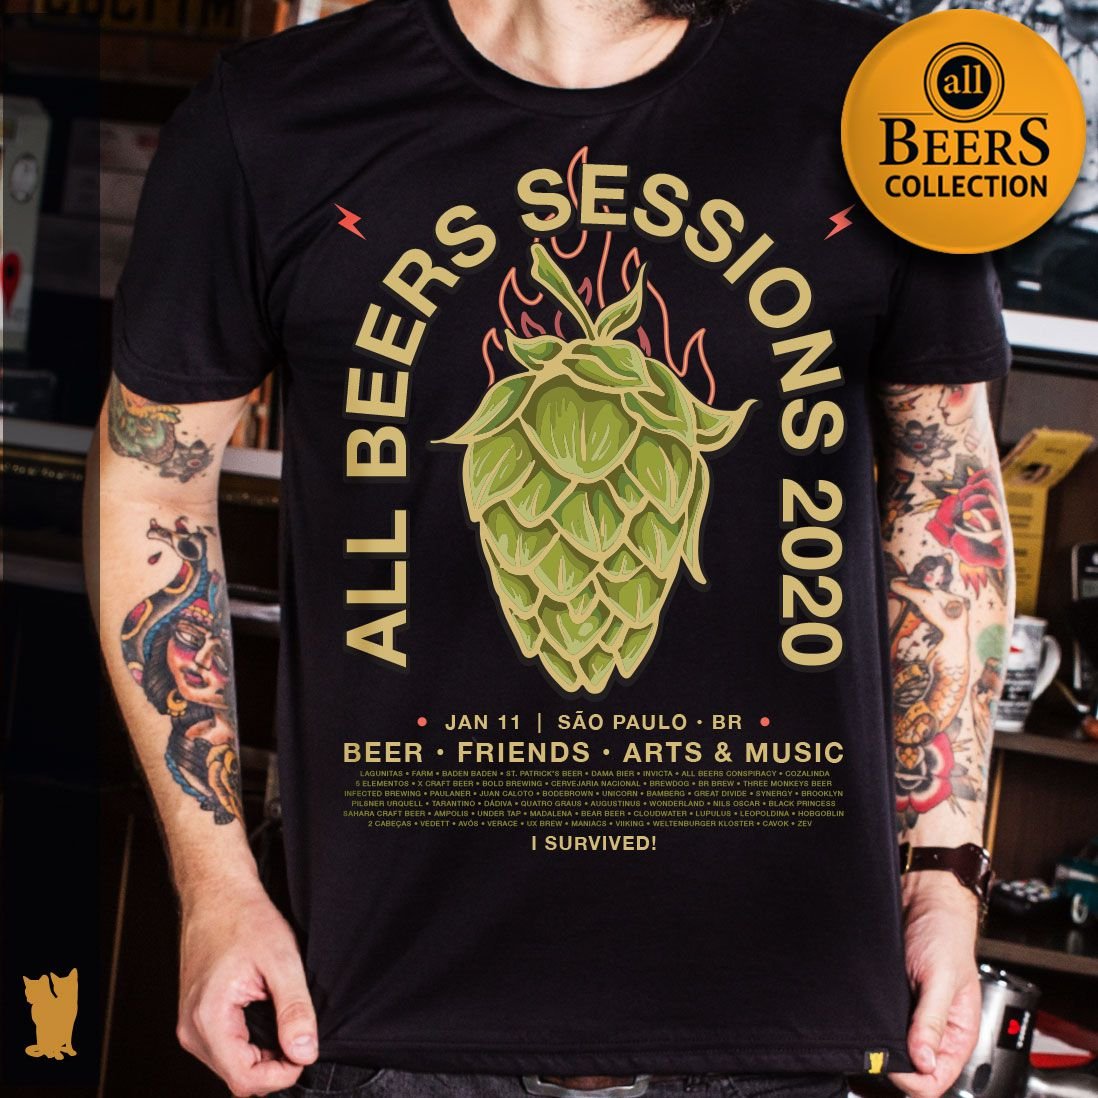 CAMISETA ALL BEERS SESSIONS 2020